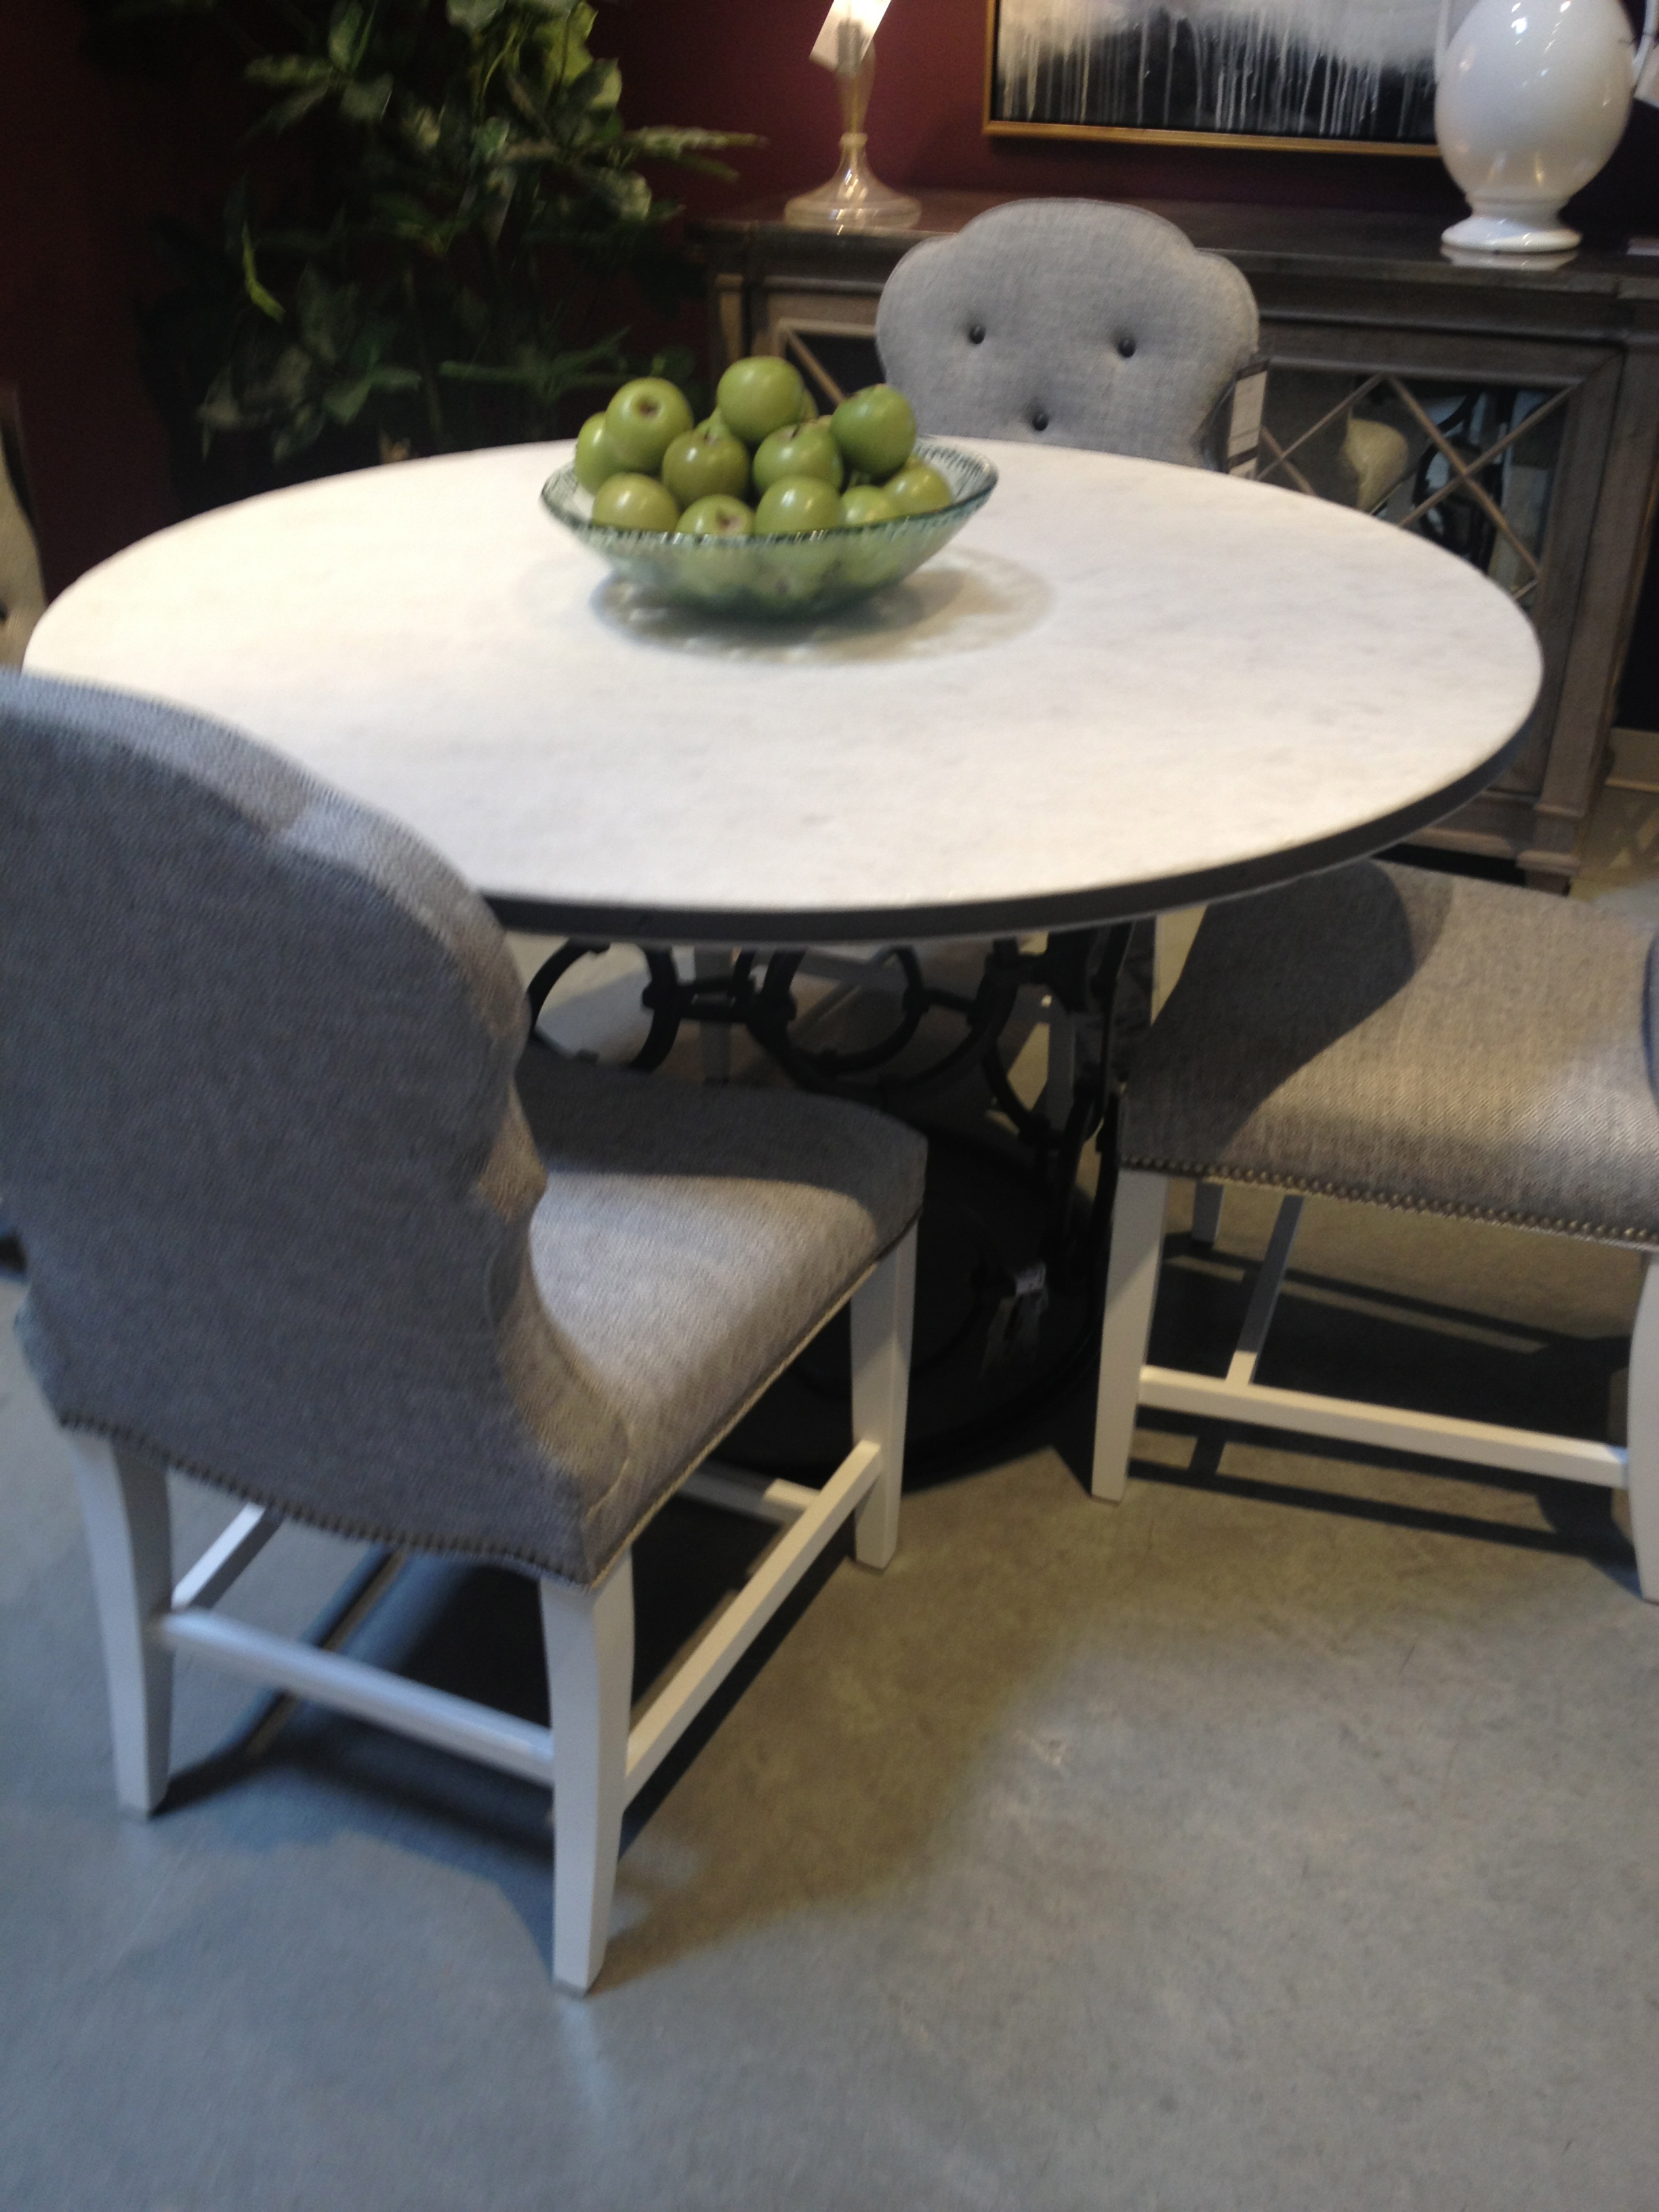 How great is the lillian august table?